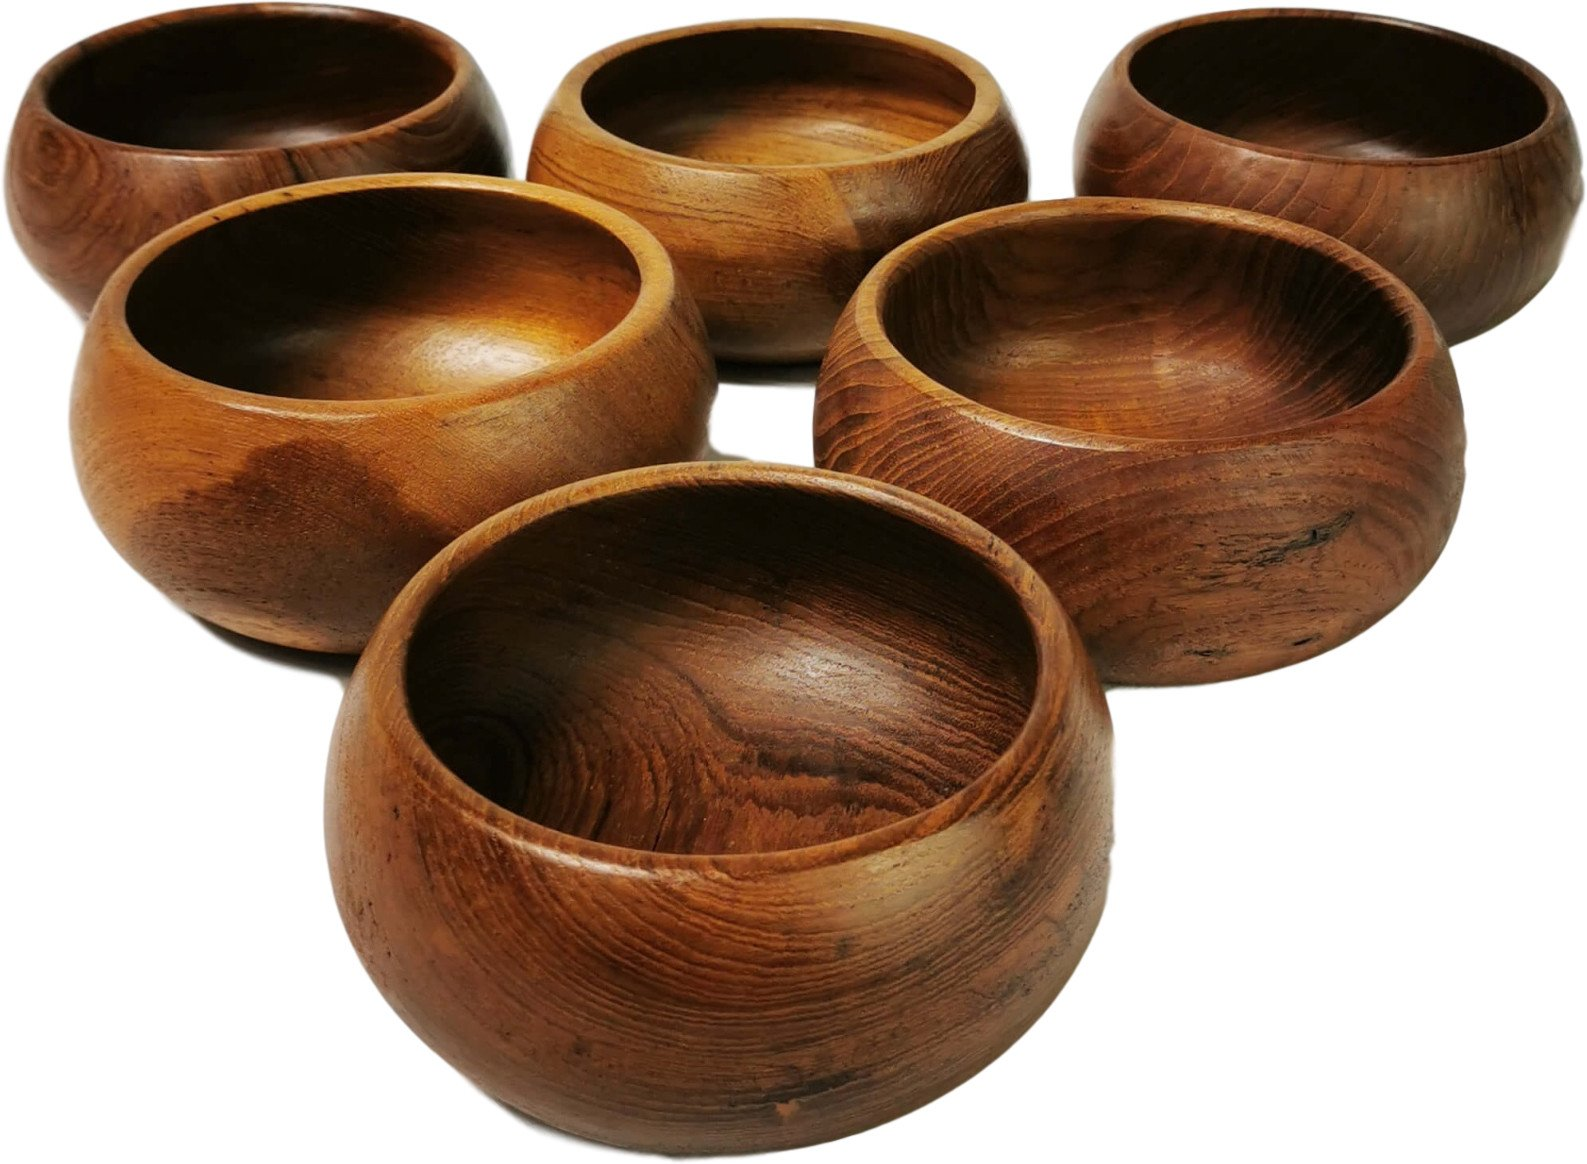 Set of Six Bowls, Norway, 1970s